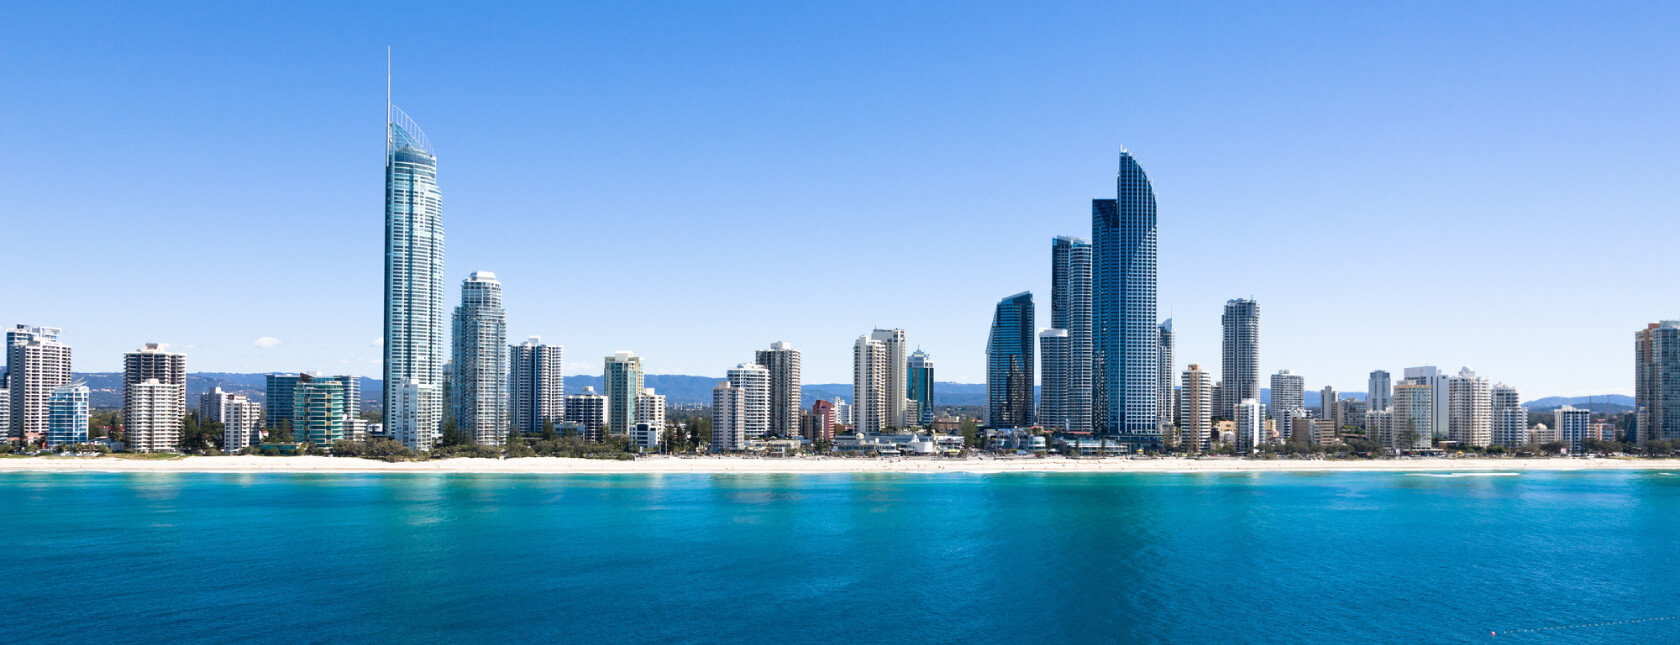 5 great group accommodation options for your Gold Coast holiday